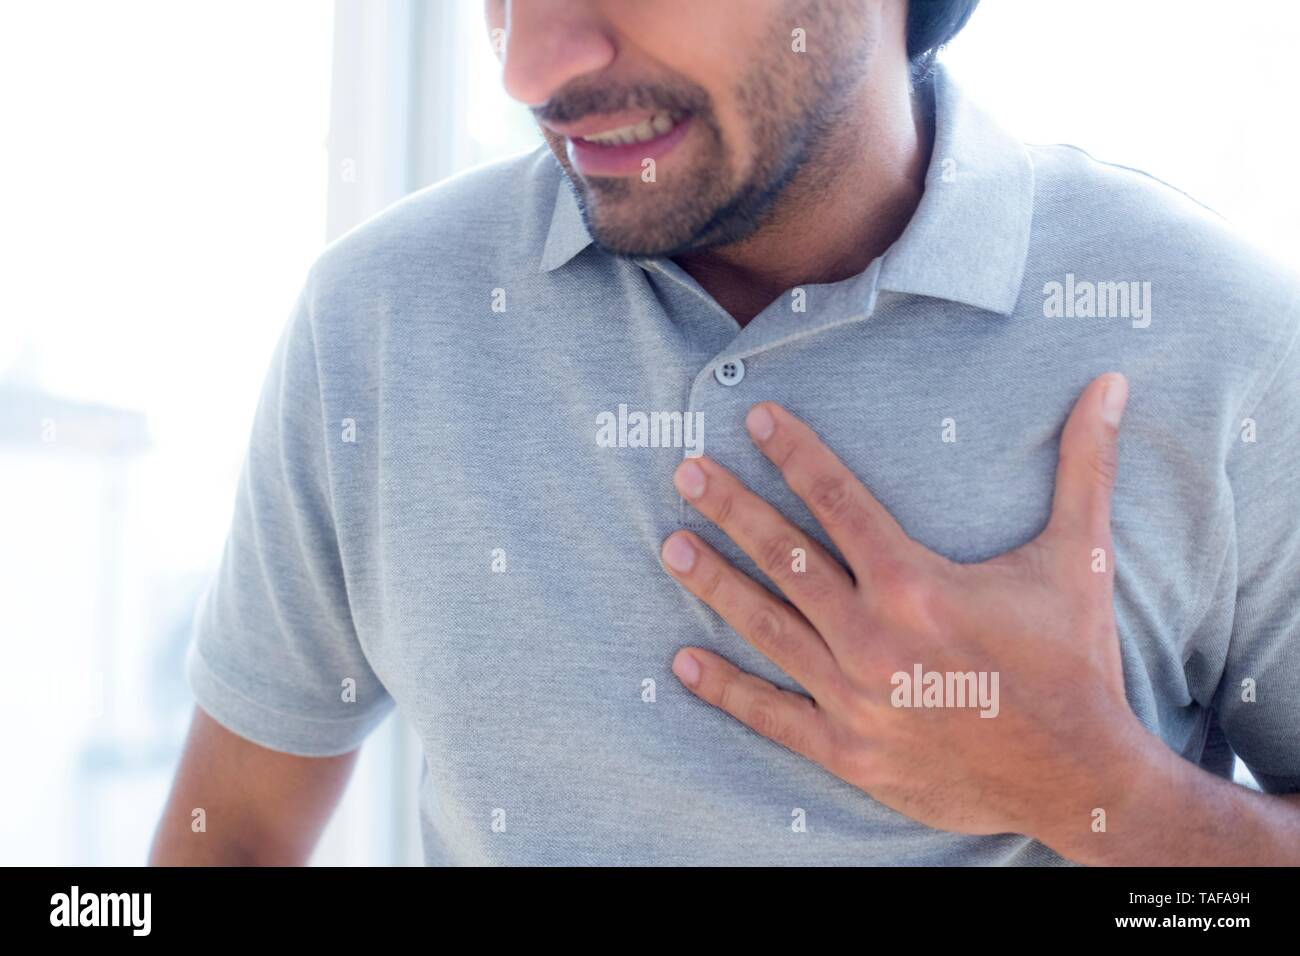 Man touching his chest in pain - Stock Image